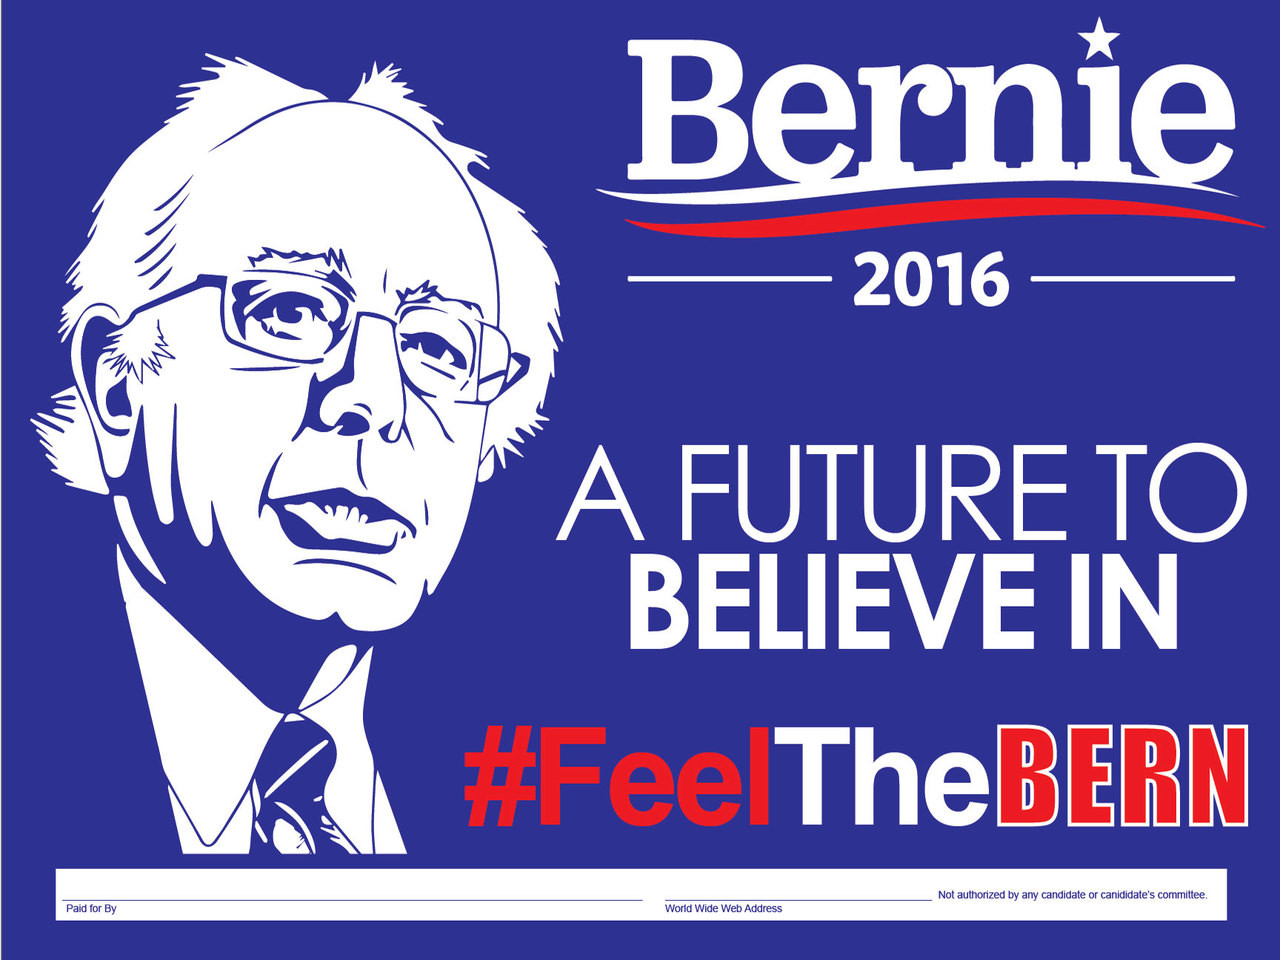 Bernie 2016 A Future to Believe In